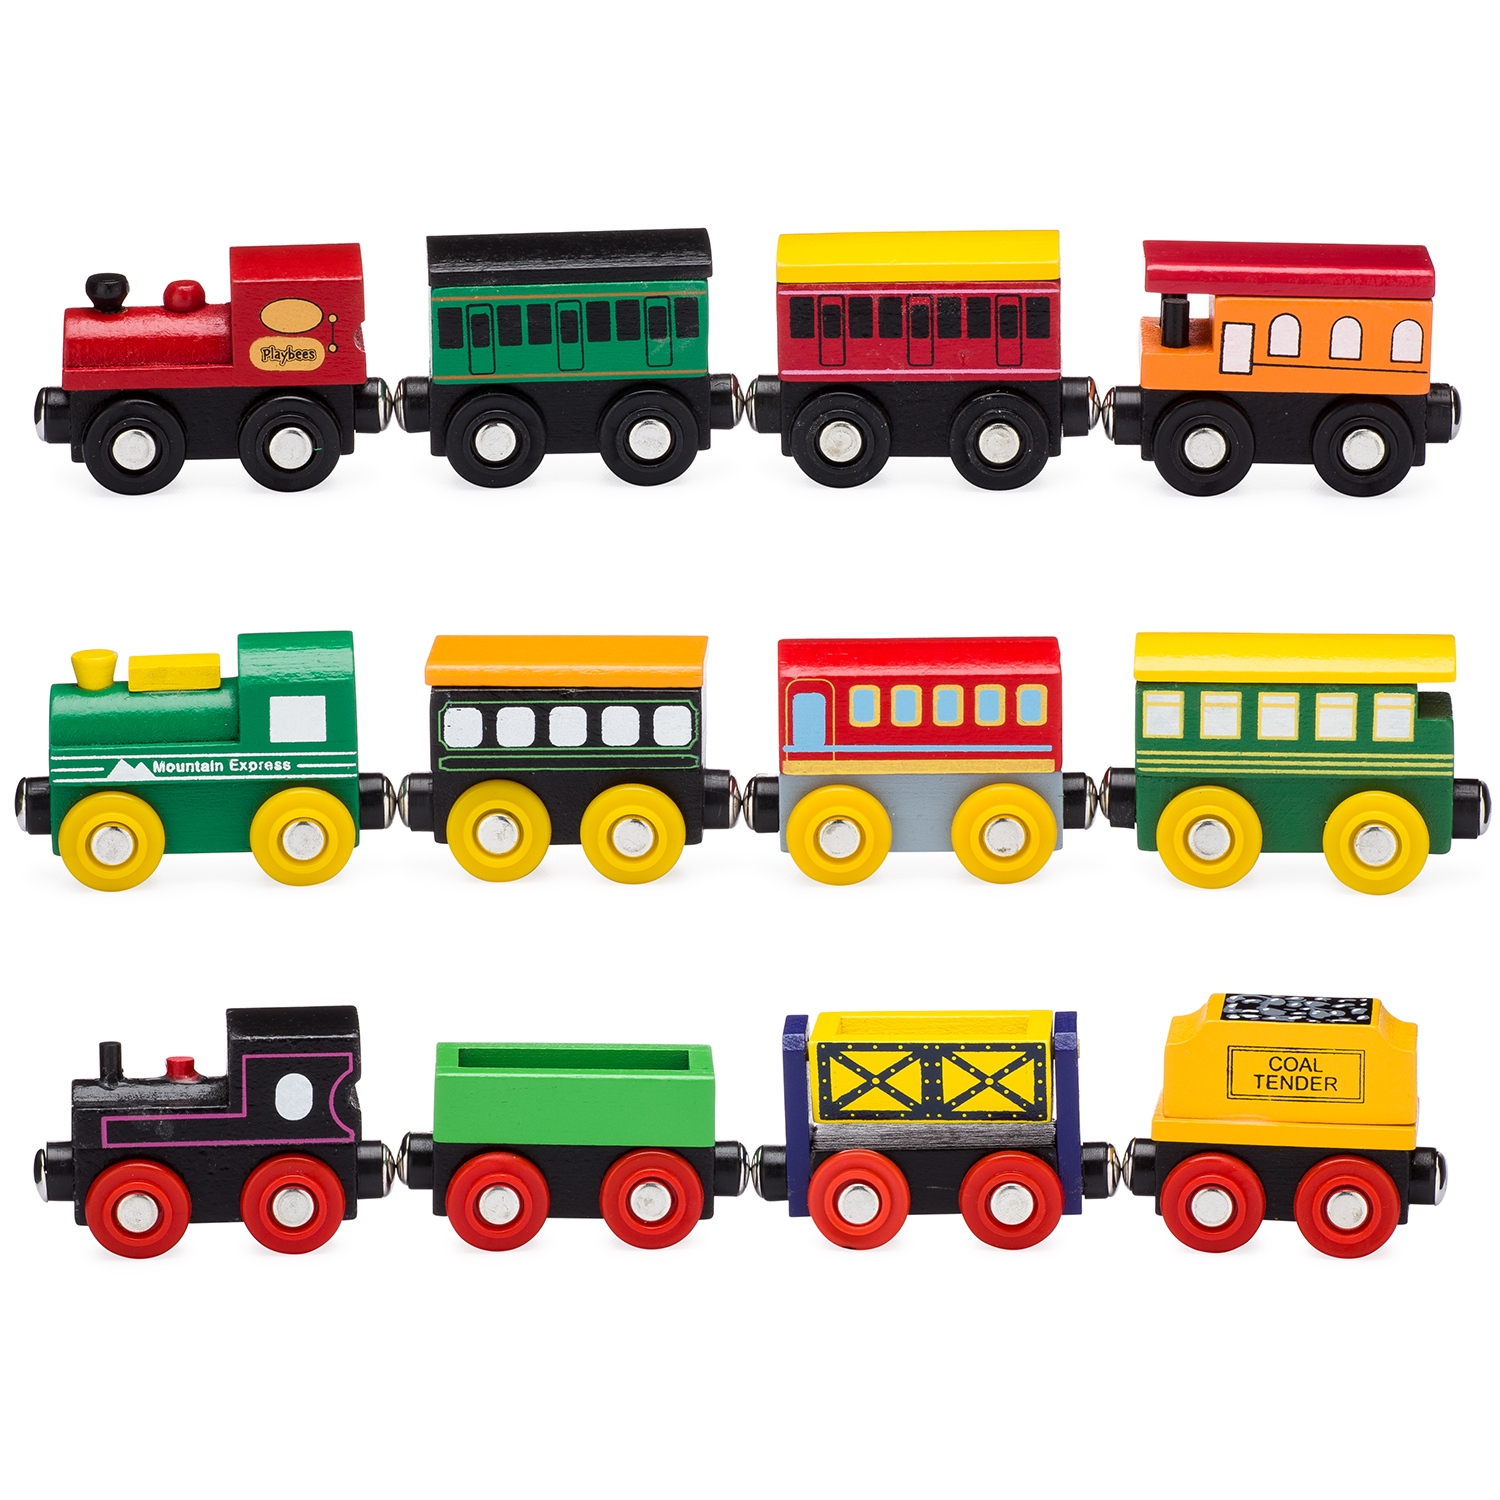 Wooden Train Tracks Playbees 12 Piece Wooden Toy Train Cars And Engine Set